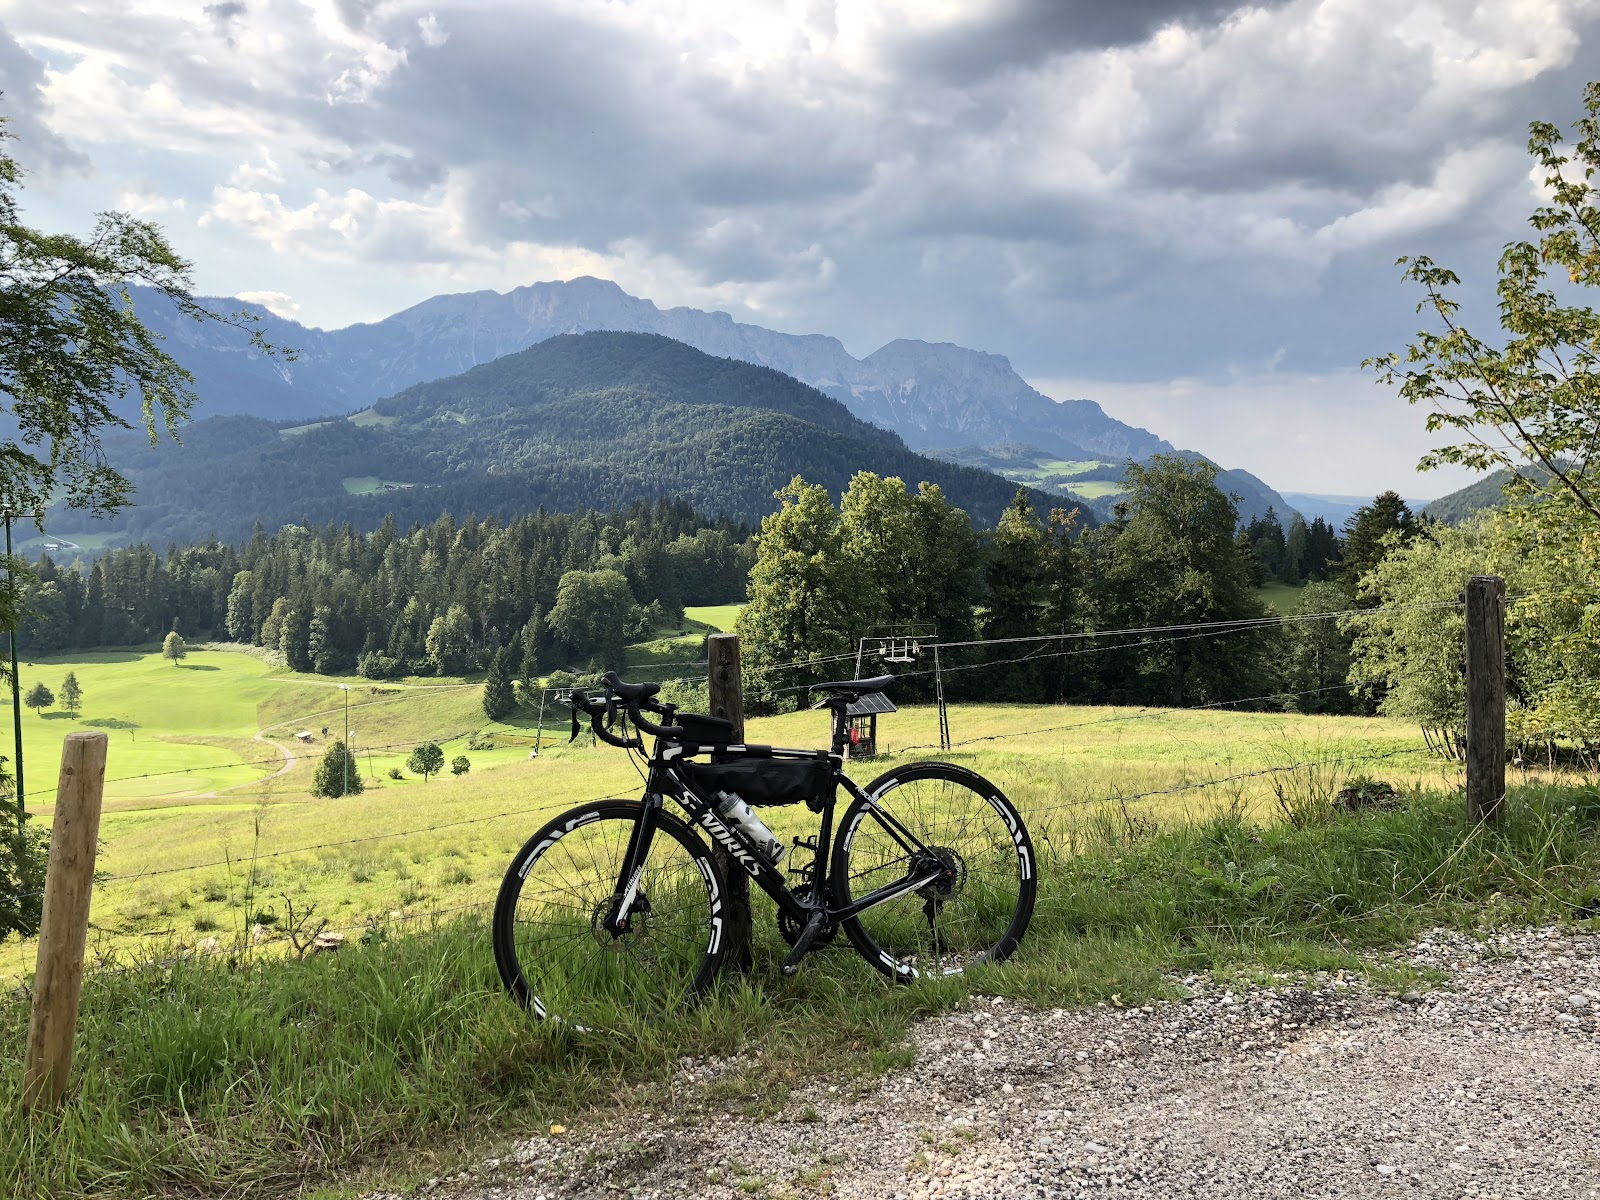 Climbing Kehlsteinhaus - Eagles Nest by bike - bicycle against fence with mountains in background